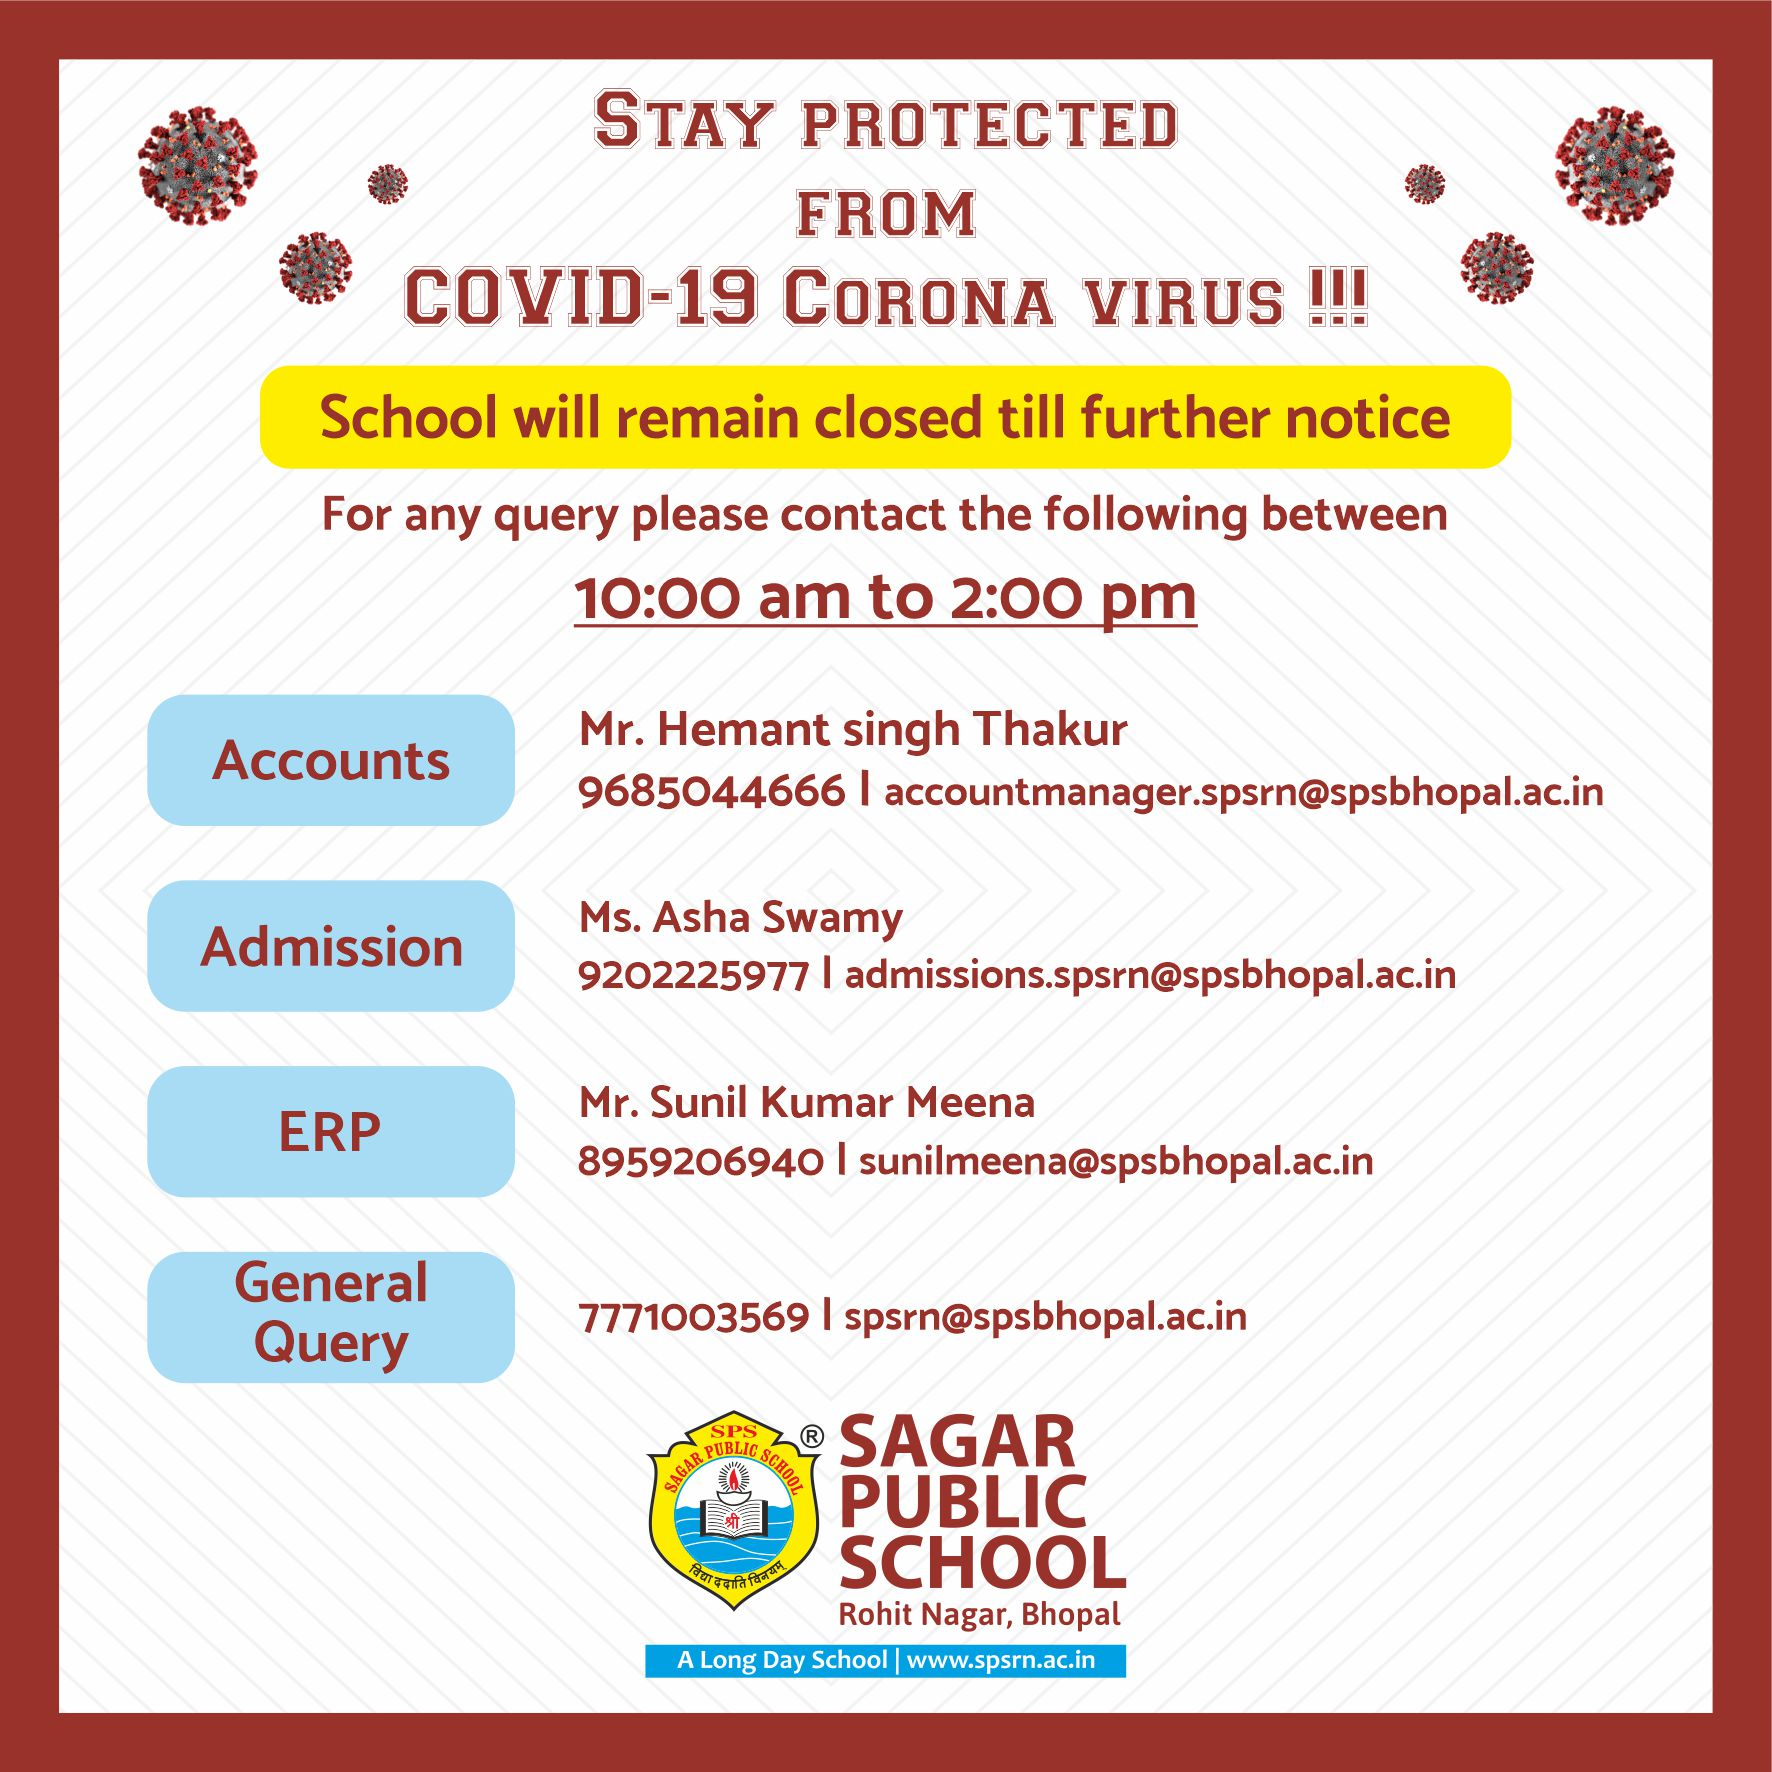 Stay Protected from COVID-19 Corona Virus!!!